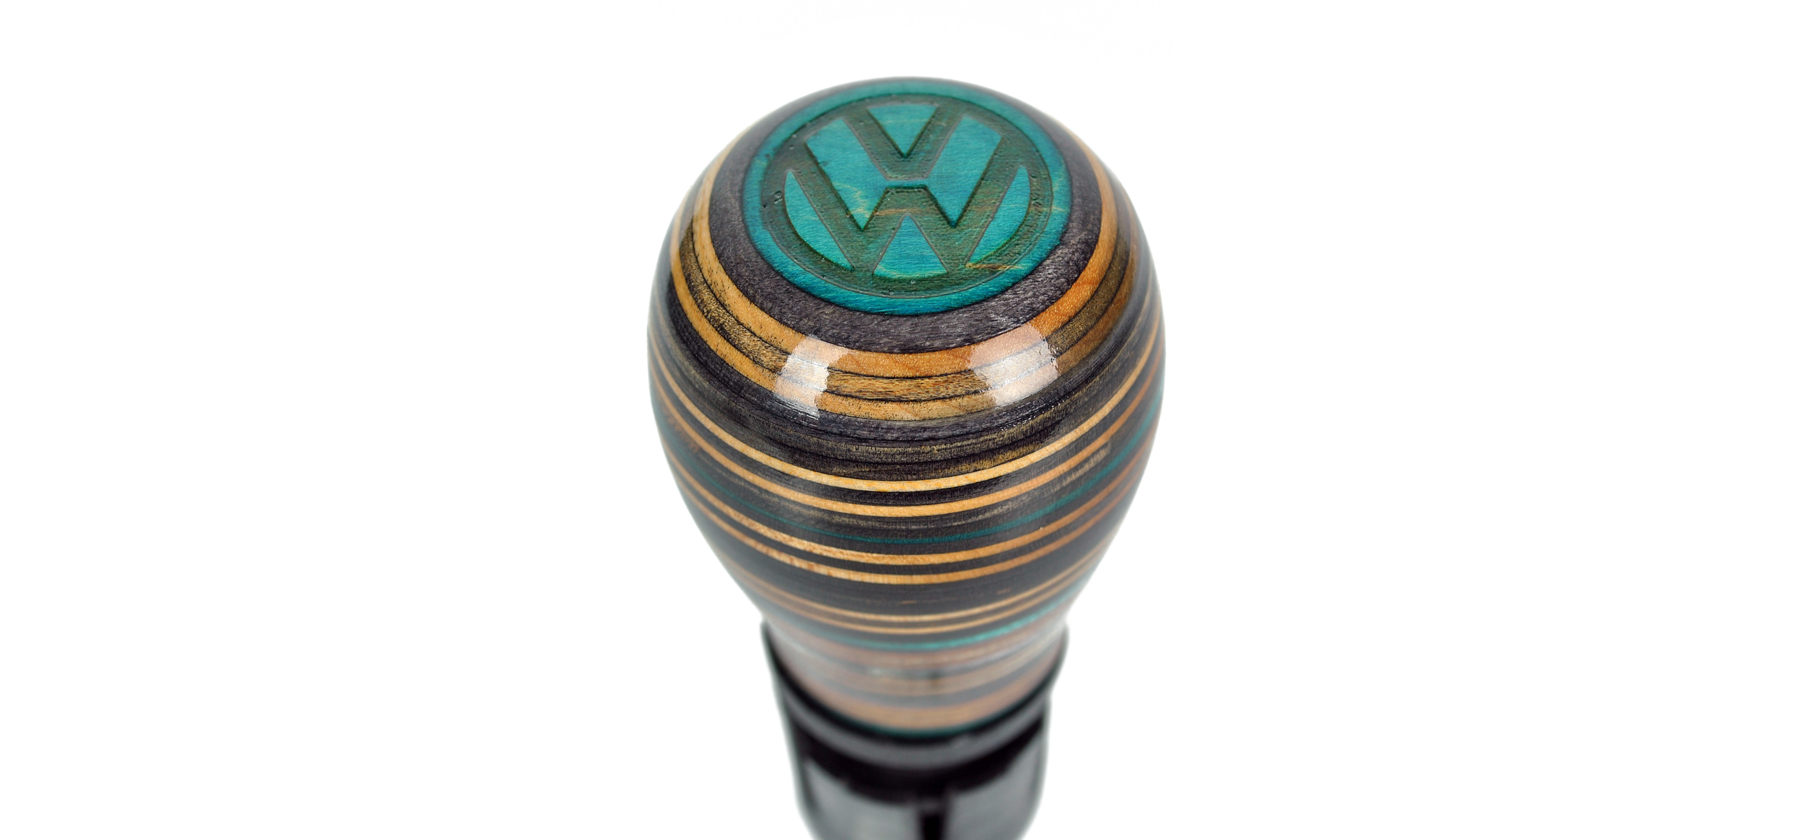 VW Golf MK6 shift knob